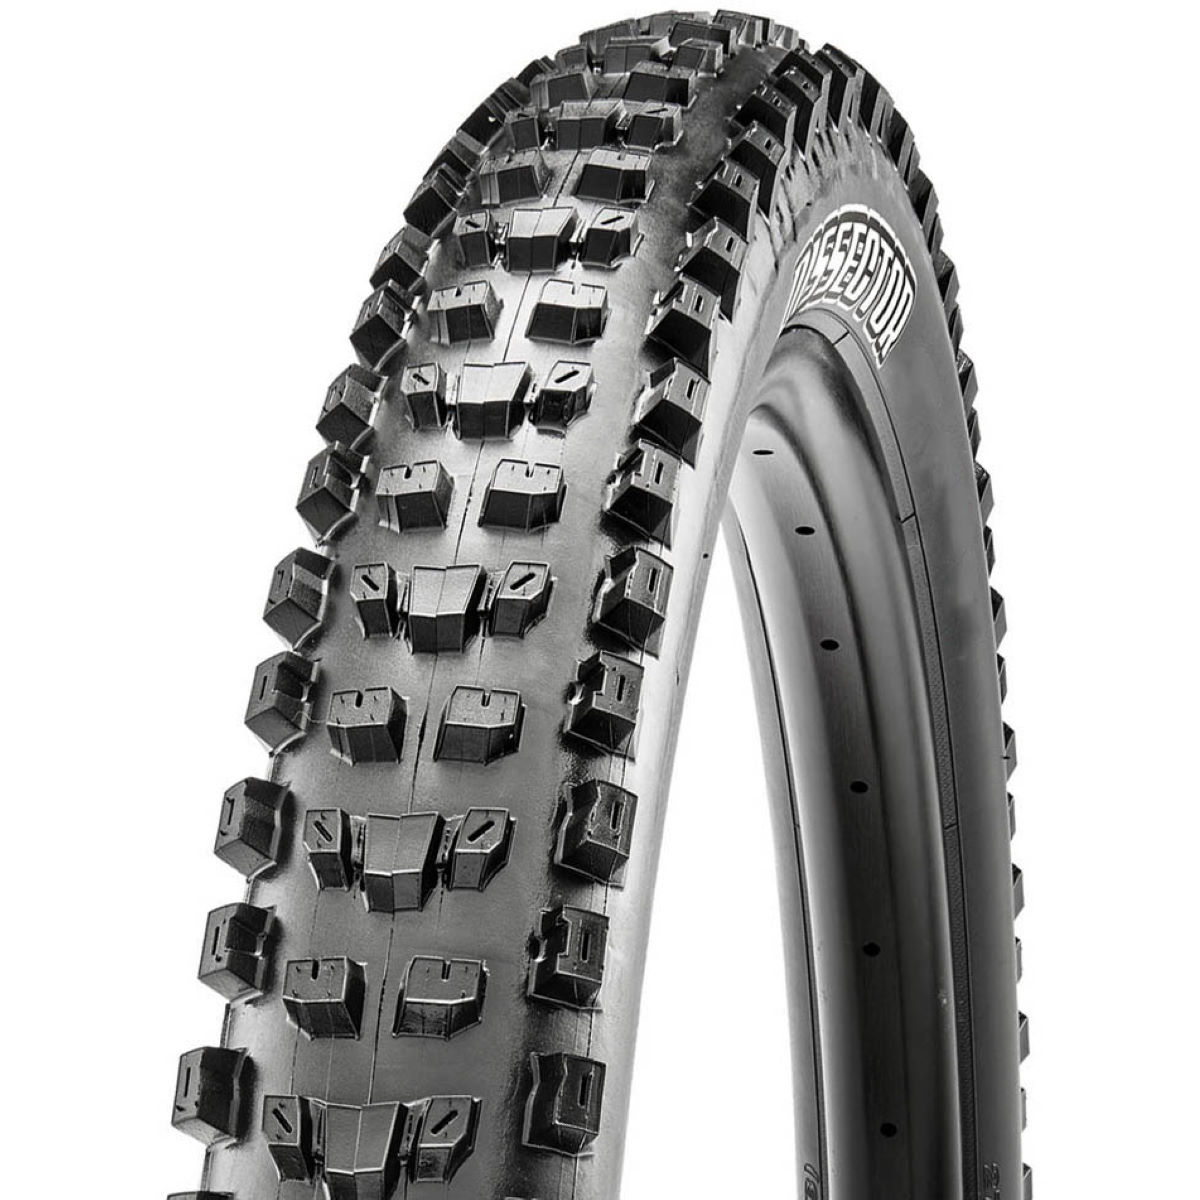 Maxxis Maxxis Dissector MTB Tyre - EXO - TR   Tyres